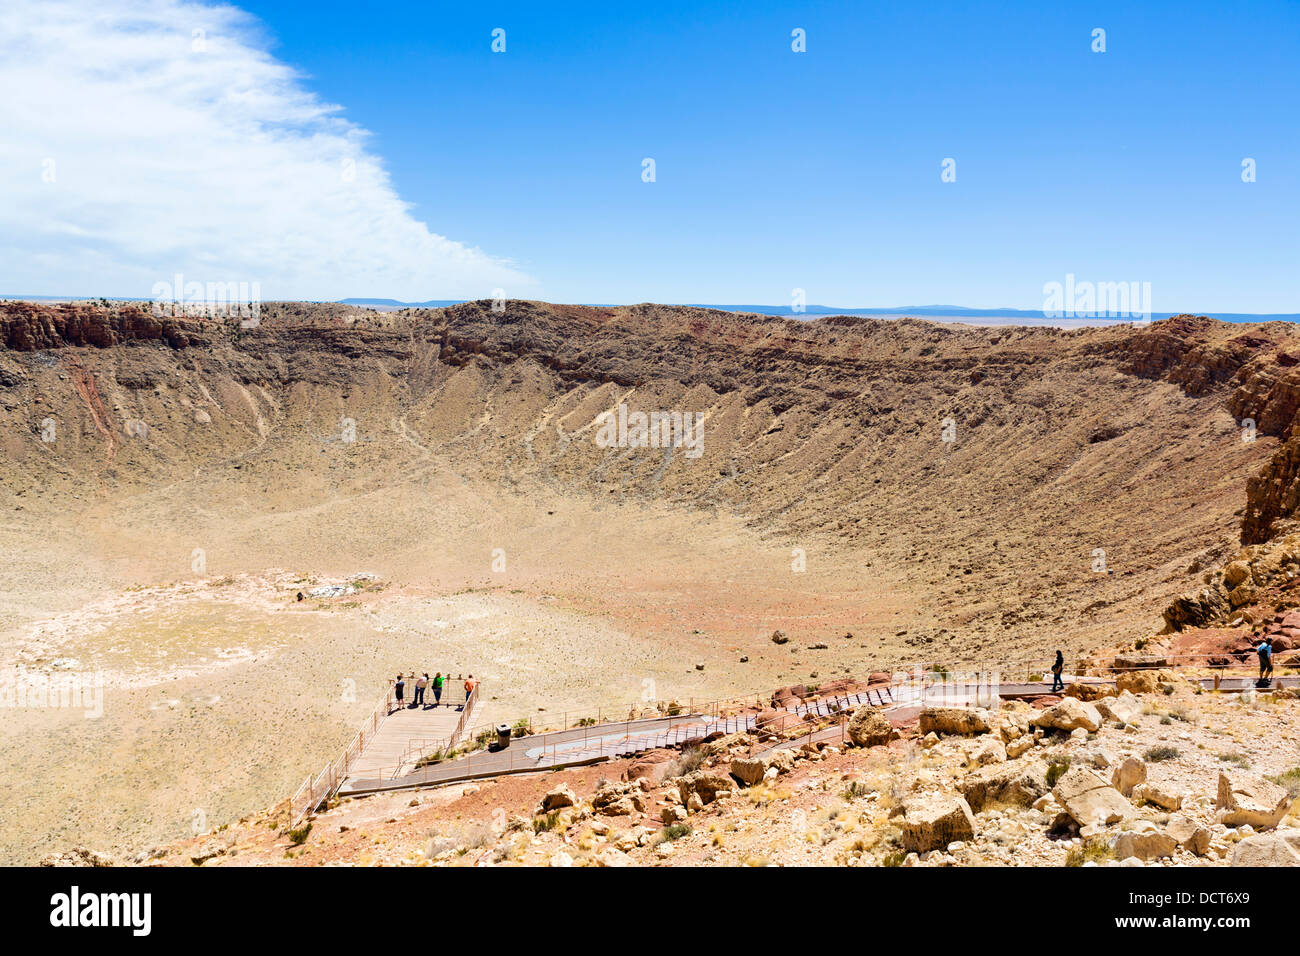 Tourists on the Rim overlook, Meteor Crater (also known as Barringer Crater) near Winslow, Arizona, USA - Stock Image